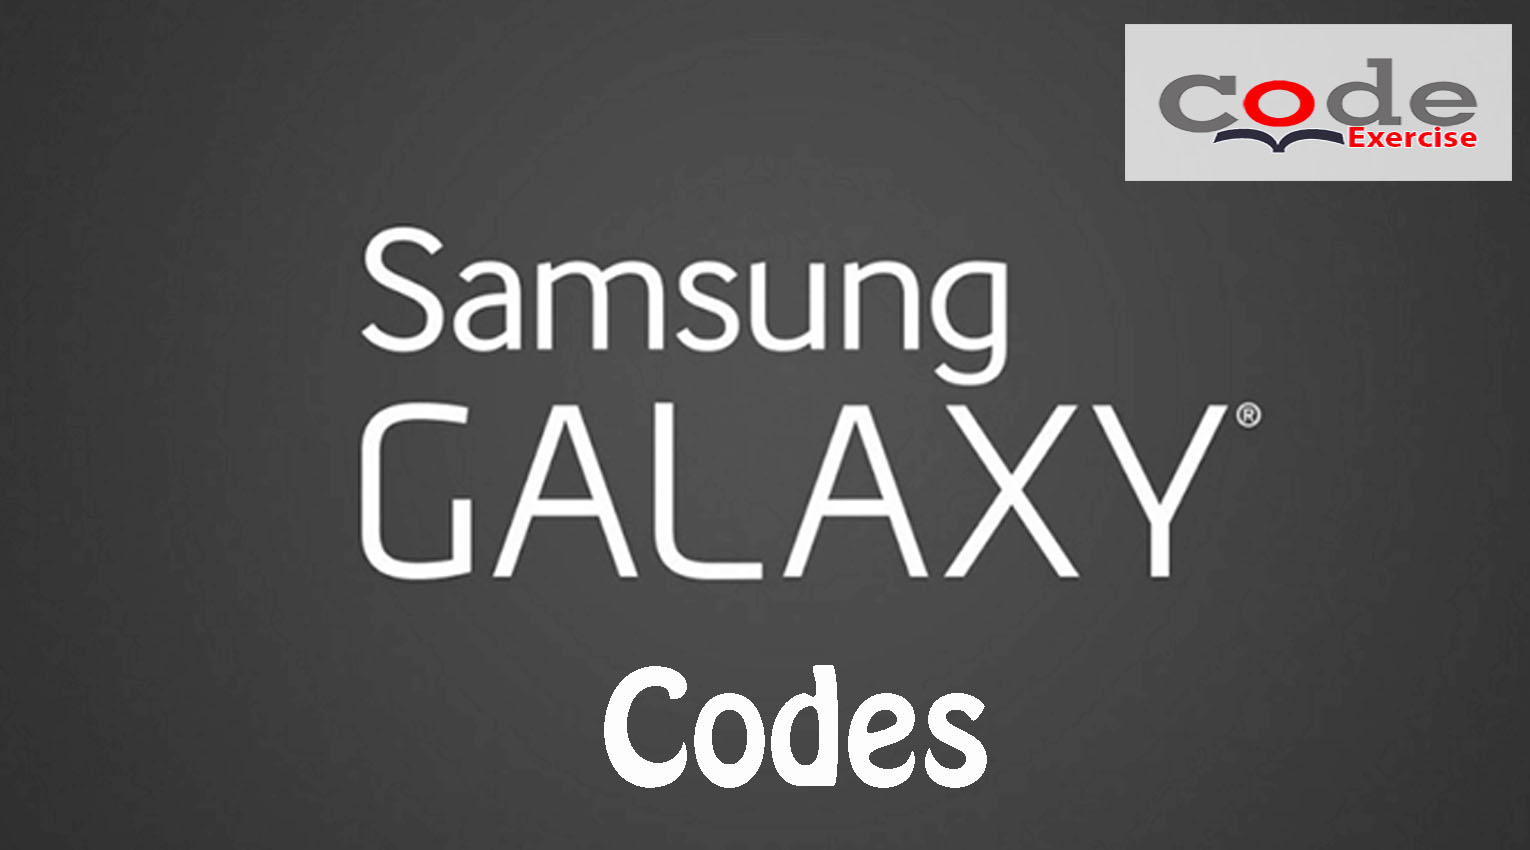 All Samsung Galaxy Codes (Secret) List  | | Code Exercise